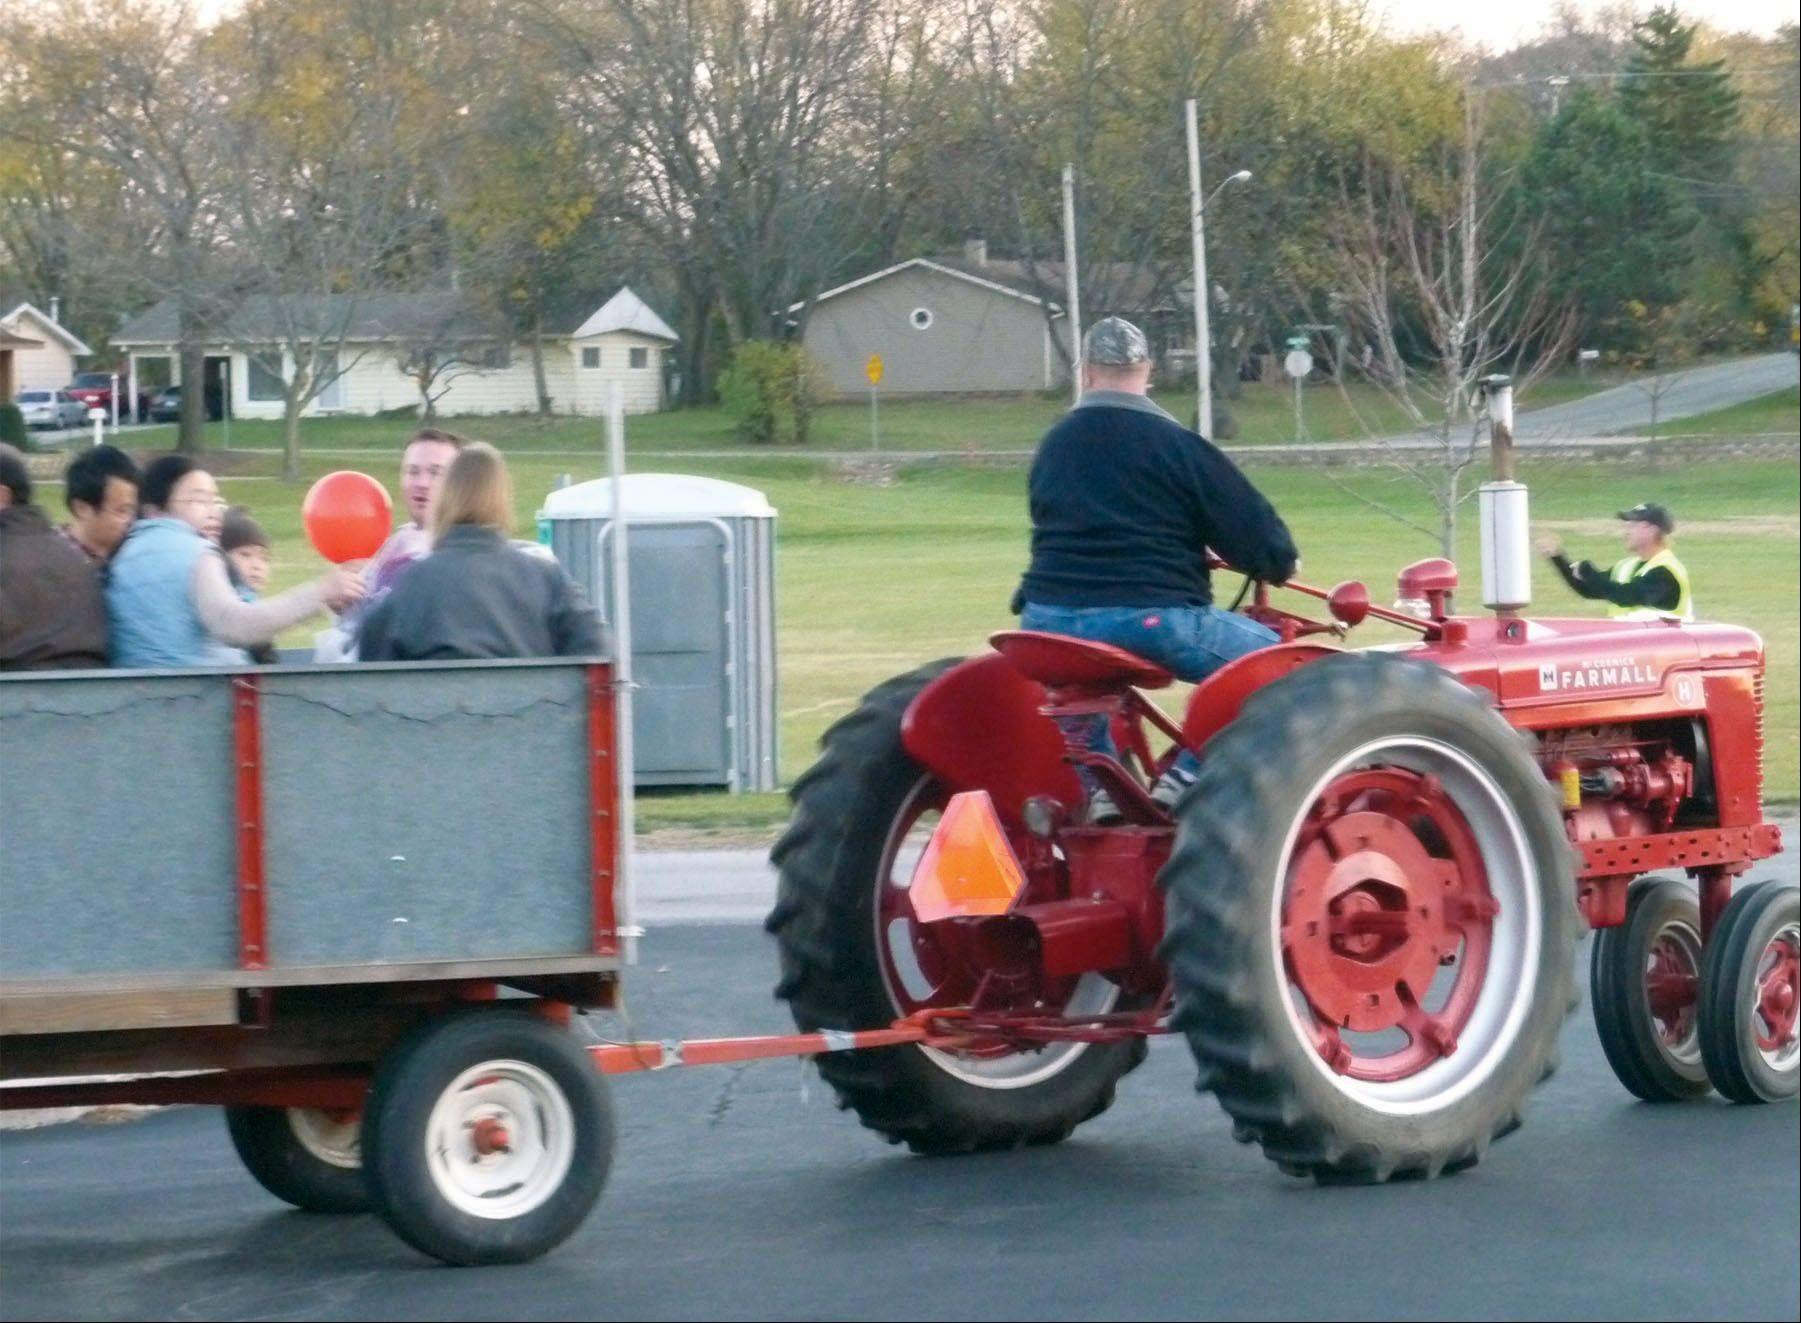 Tractor-pulled wagon rides are part of the fun at Boo Bash Oct. 27 at Keith Mione Community Park in Mundelein.